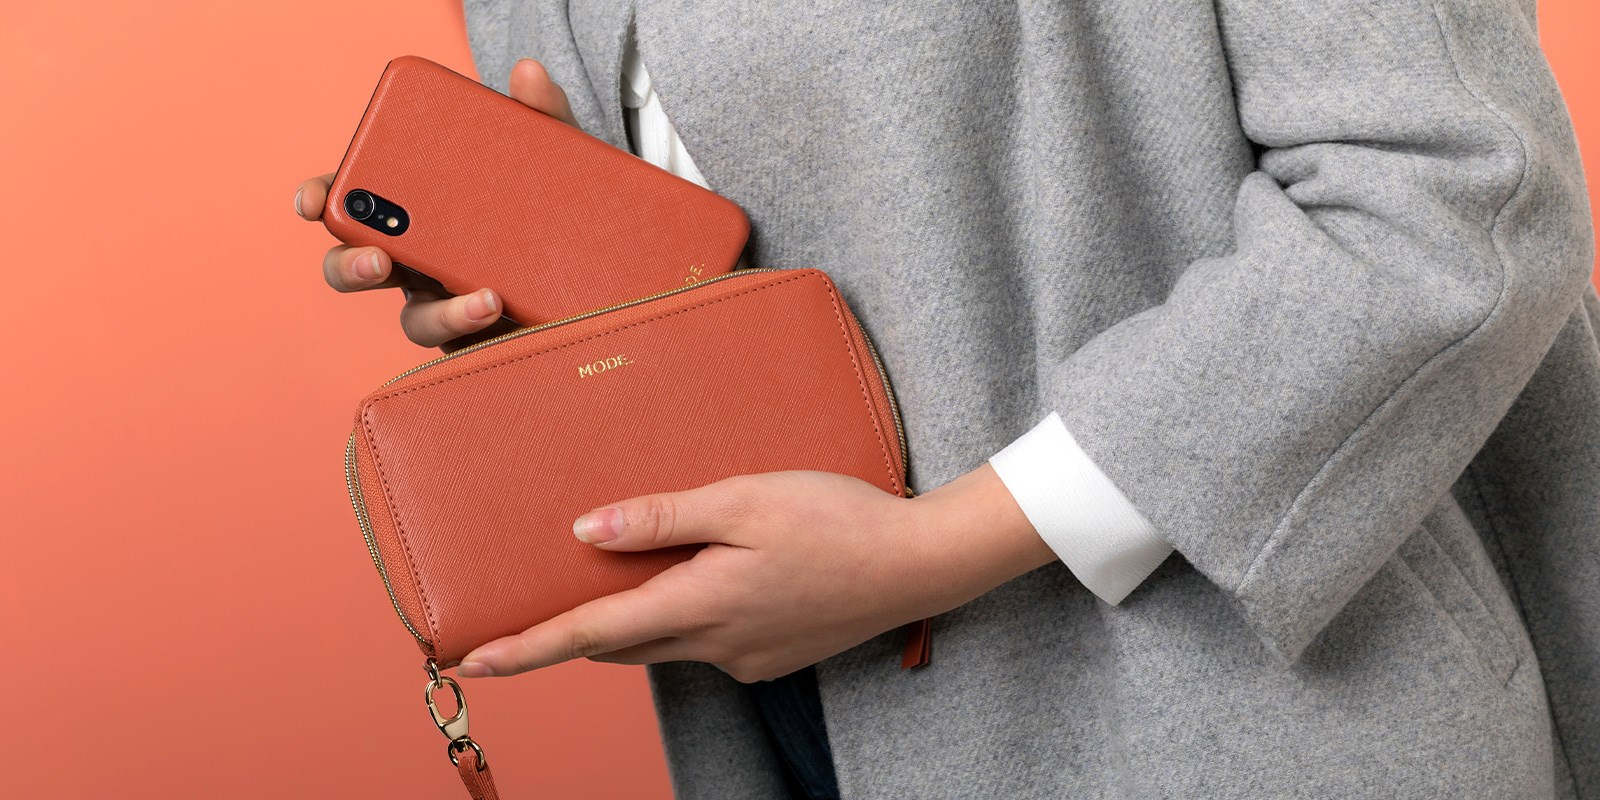 are you dating yourself by carrying a wallet